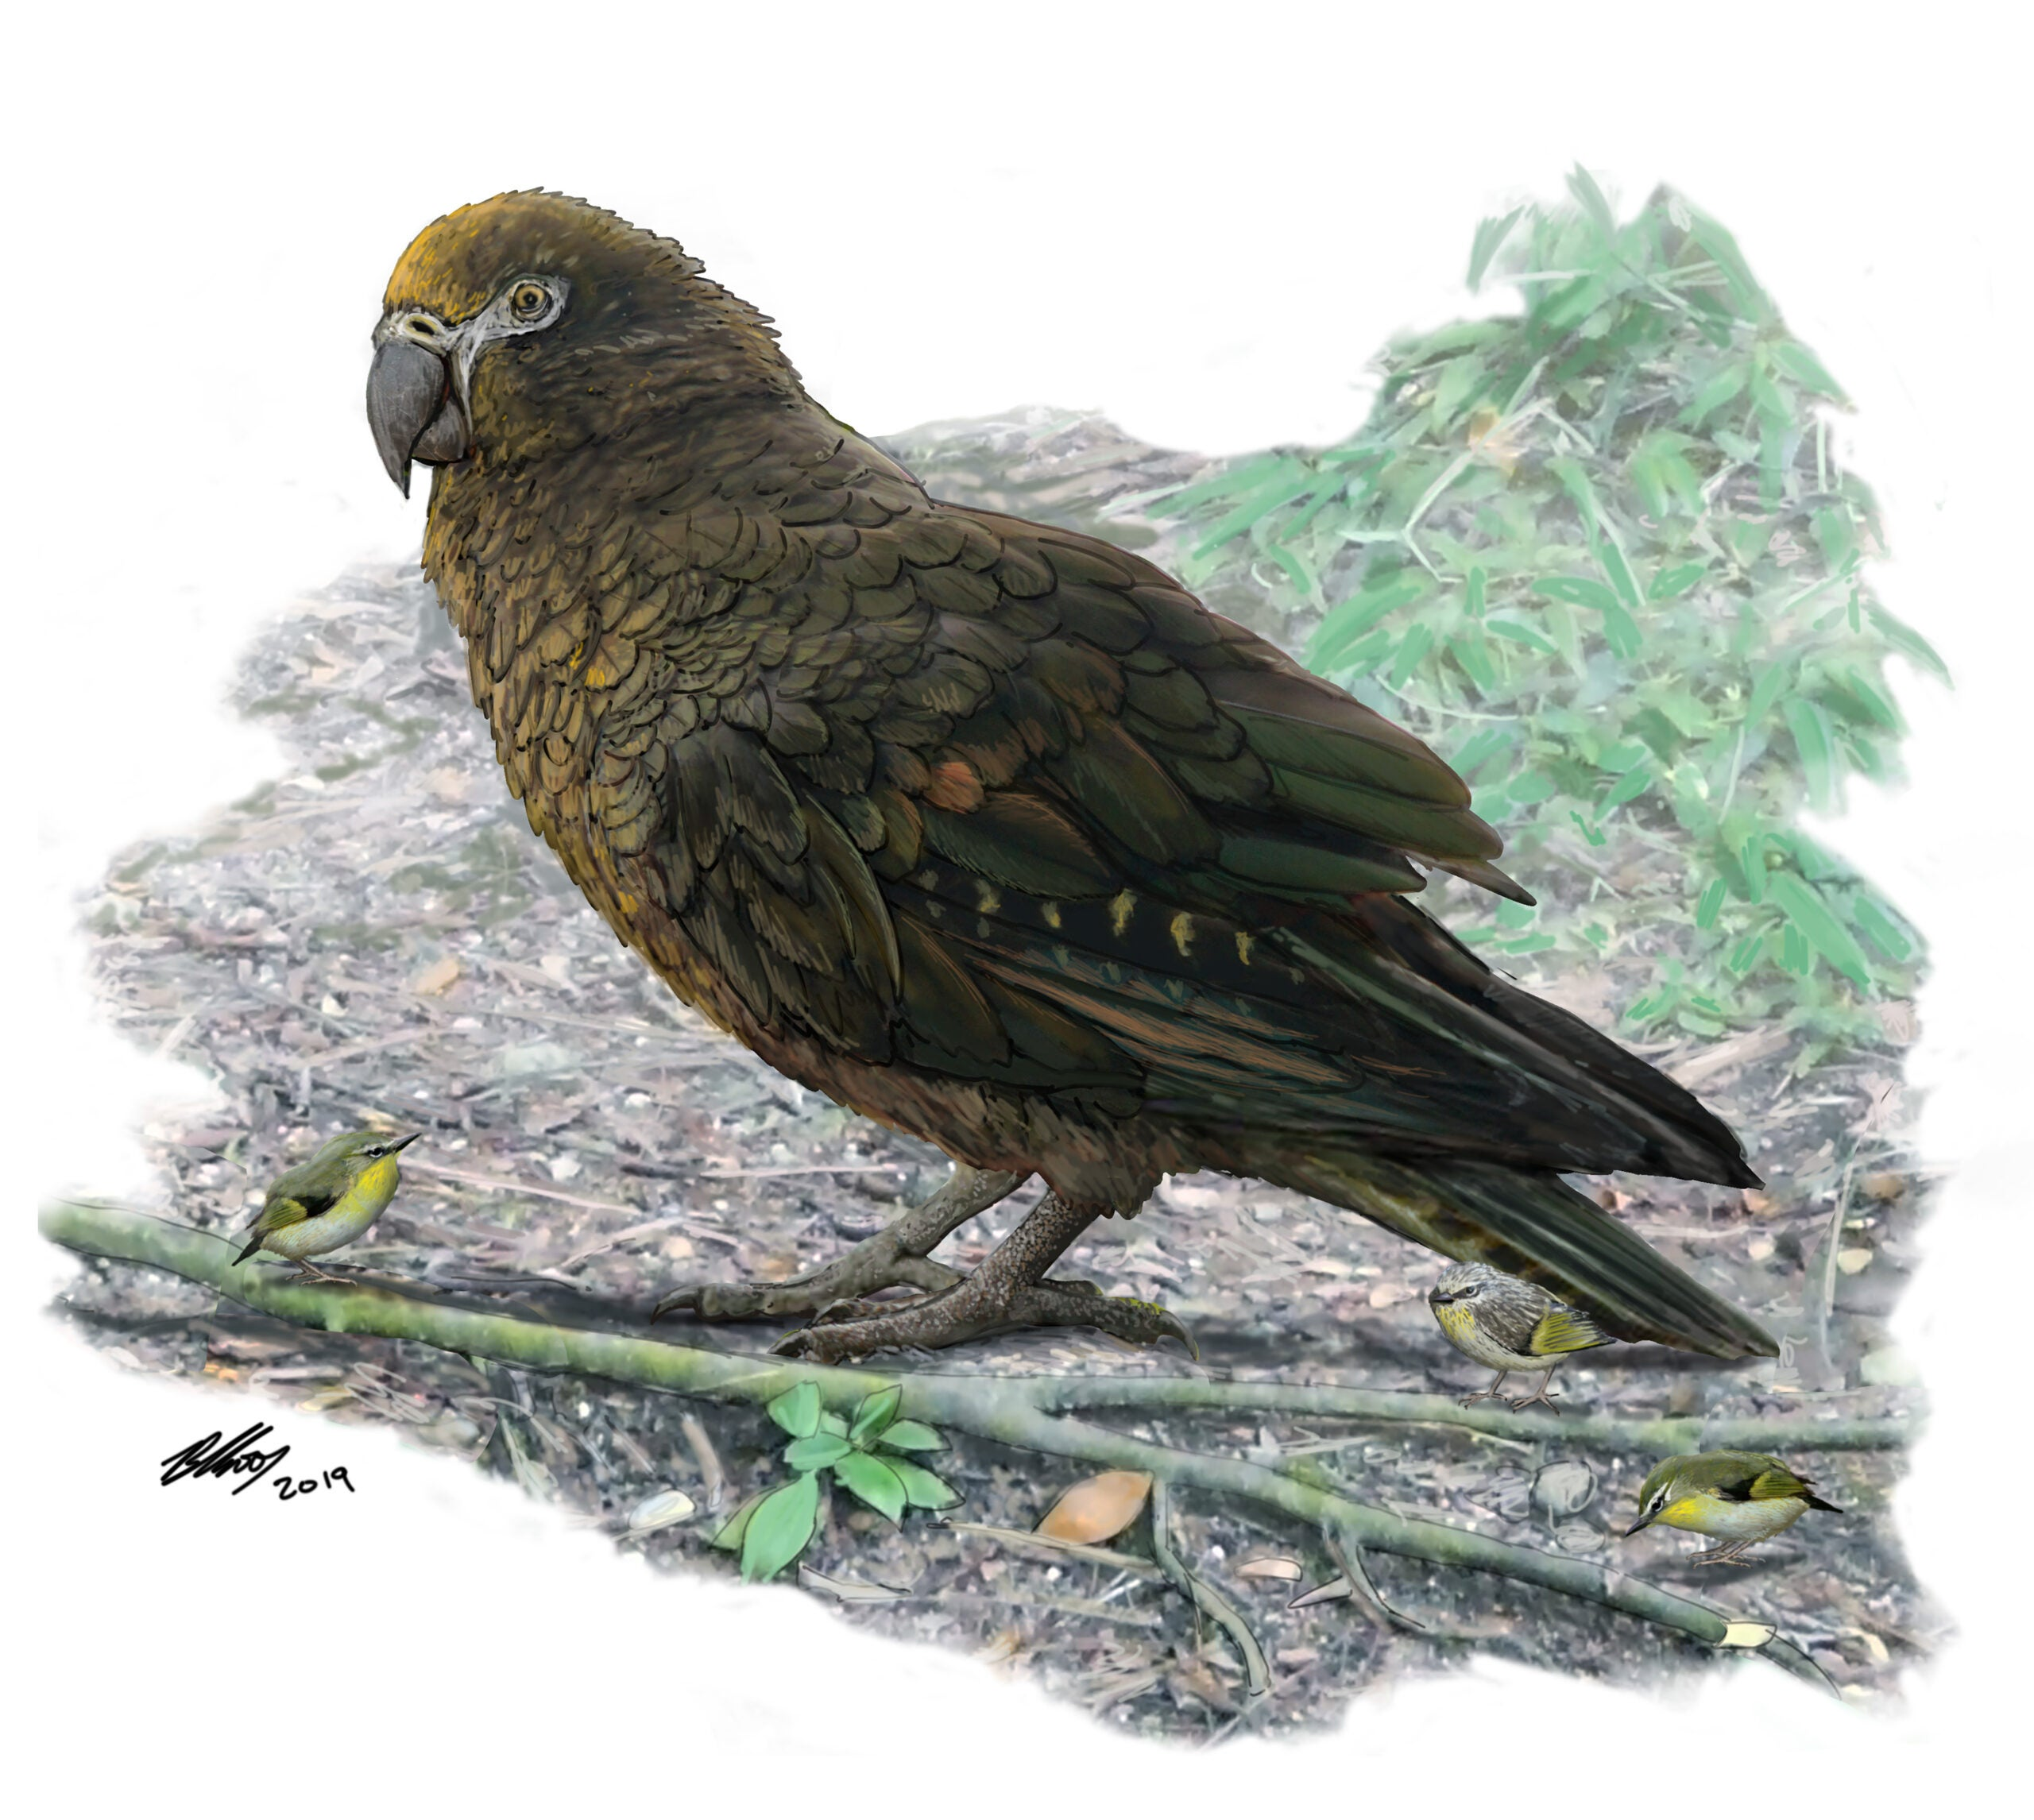 This three-foot-tall parrot proves New Zealand is the mecca of giant weird birds